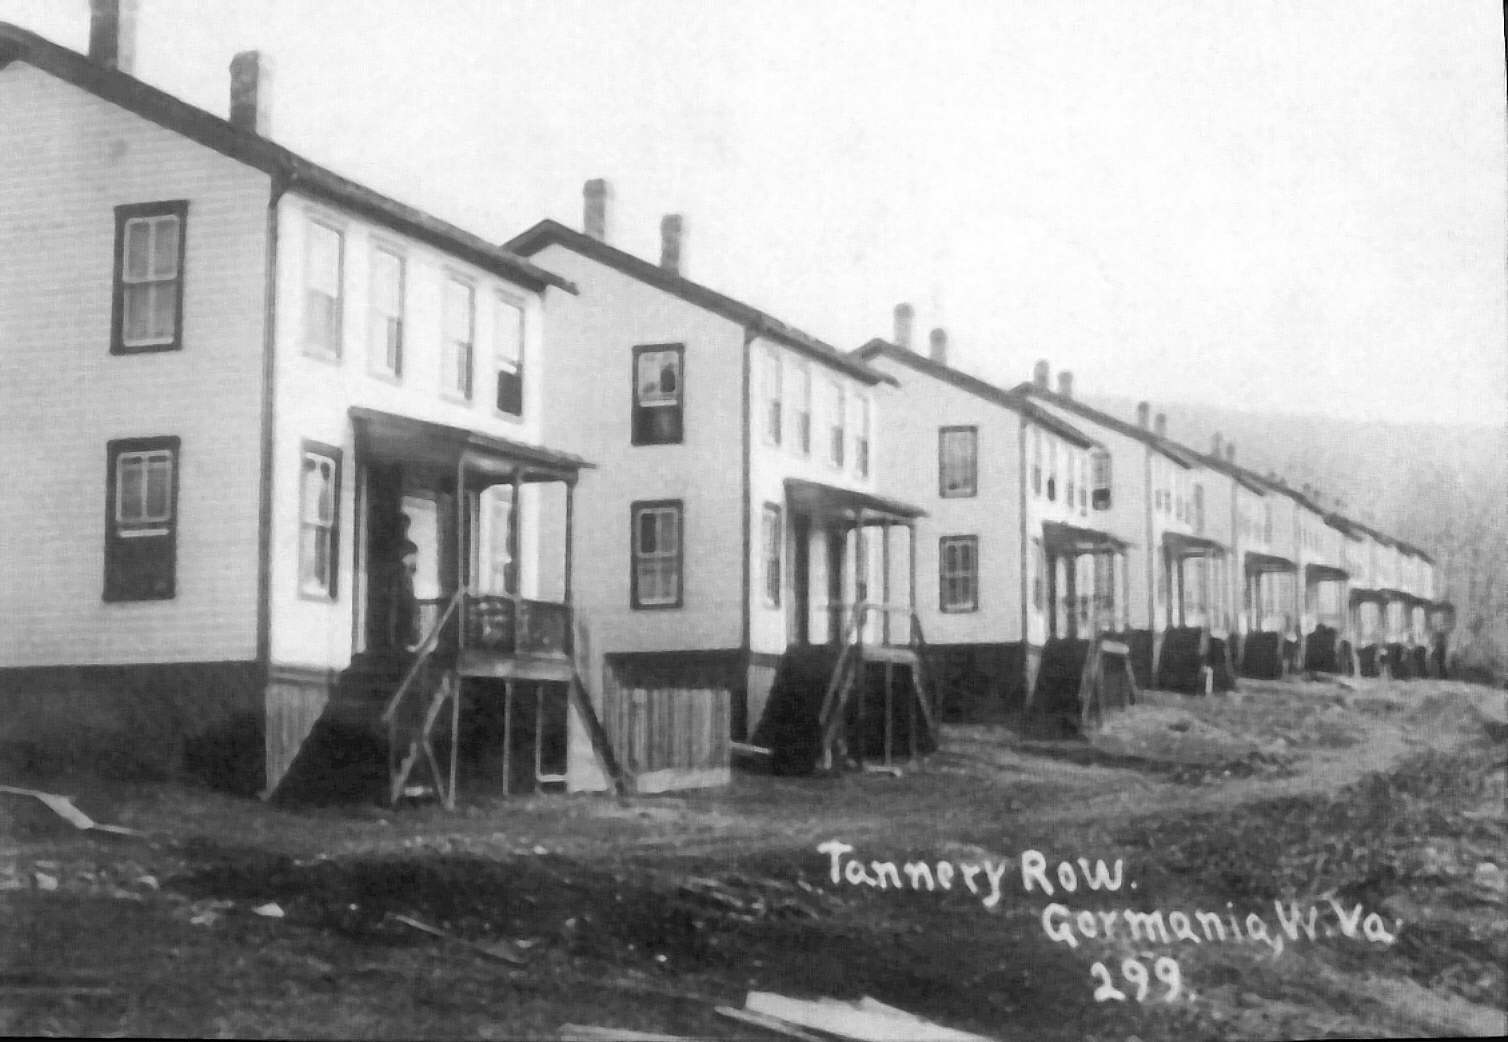 Tannery Row houses